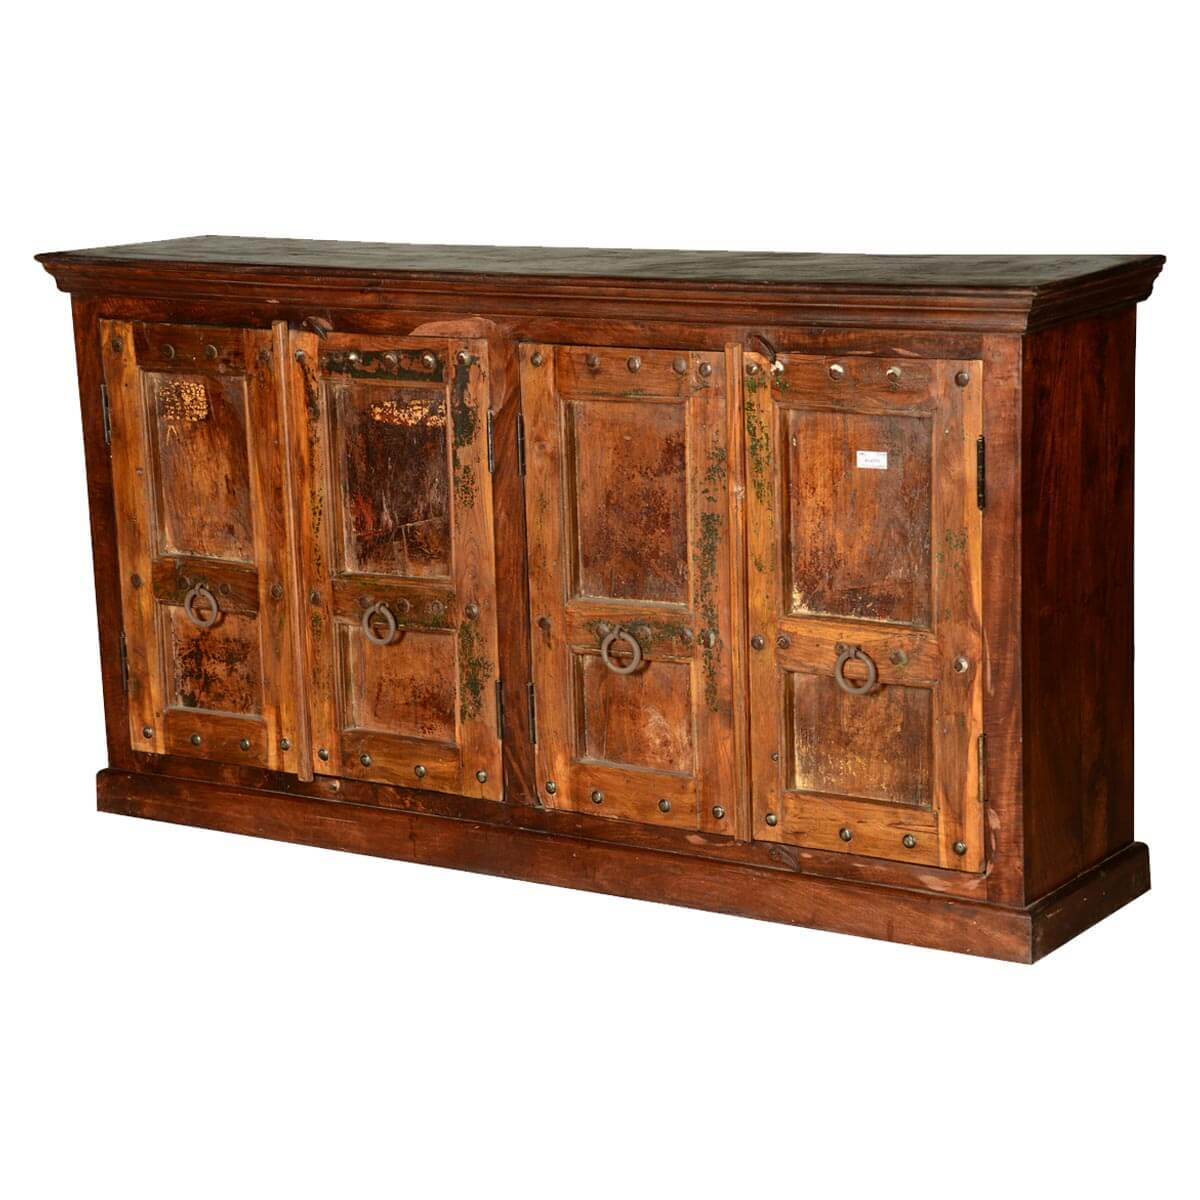 Gothic Traditions Rustic Reclaimed Wood Sideboard Cabinet